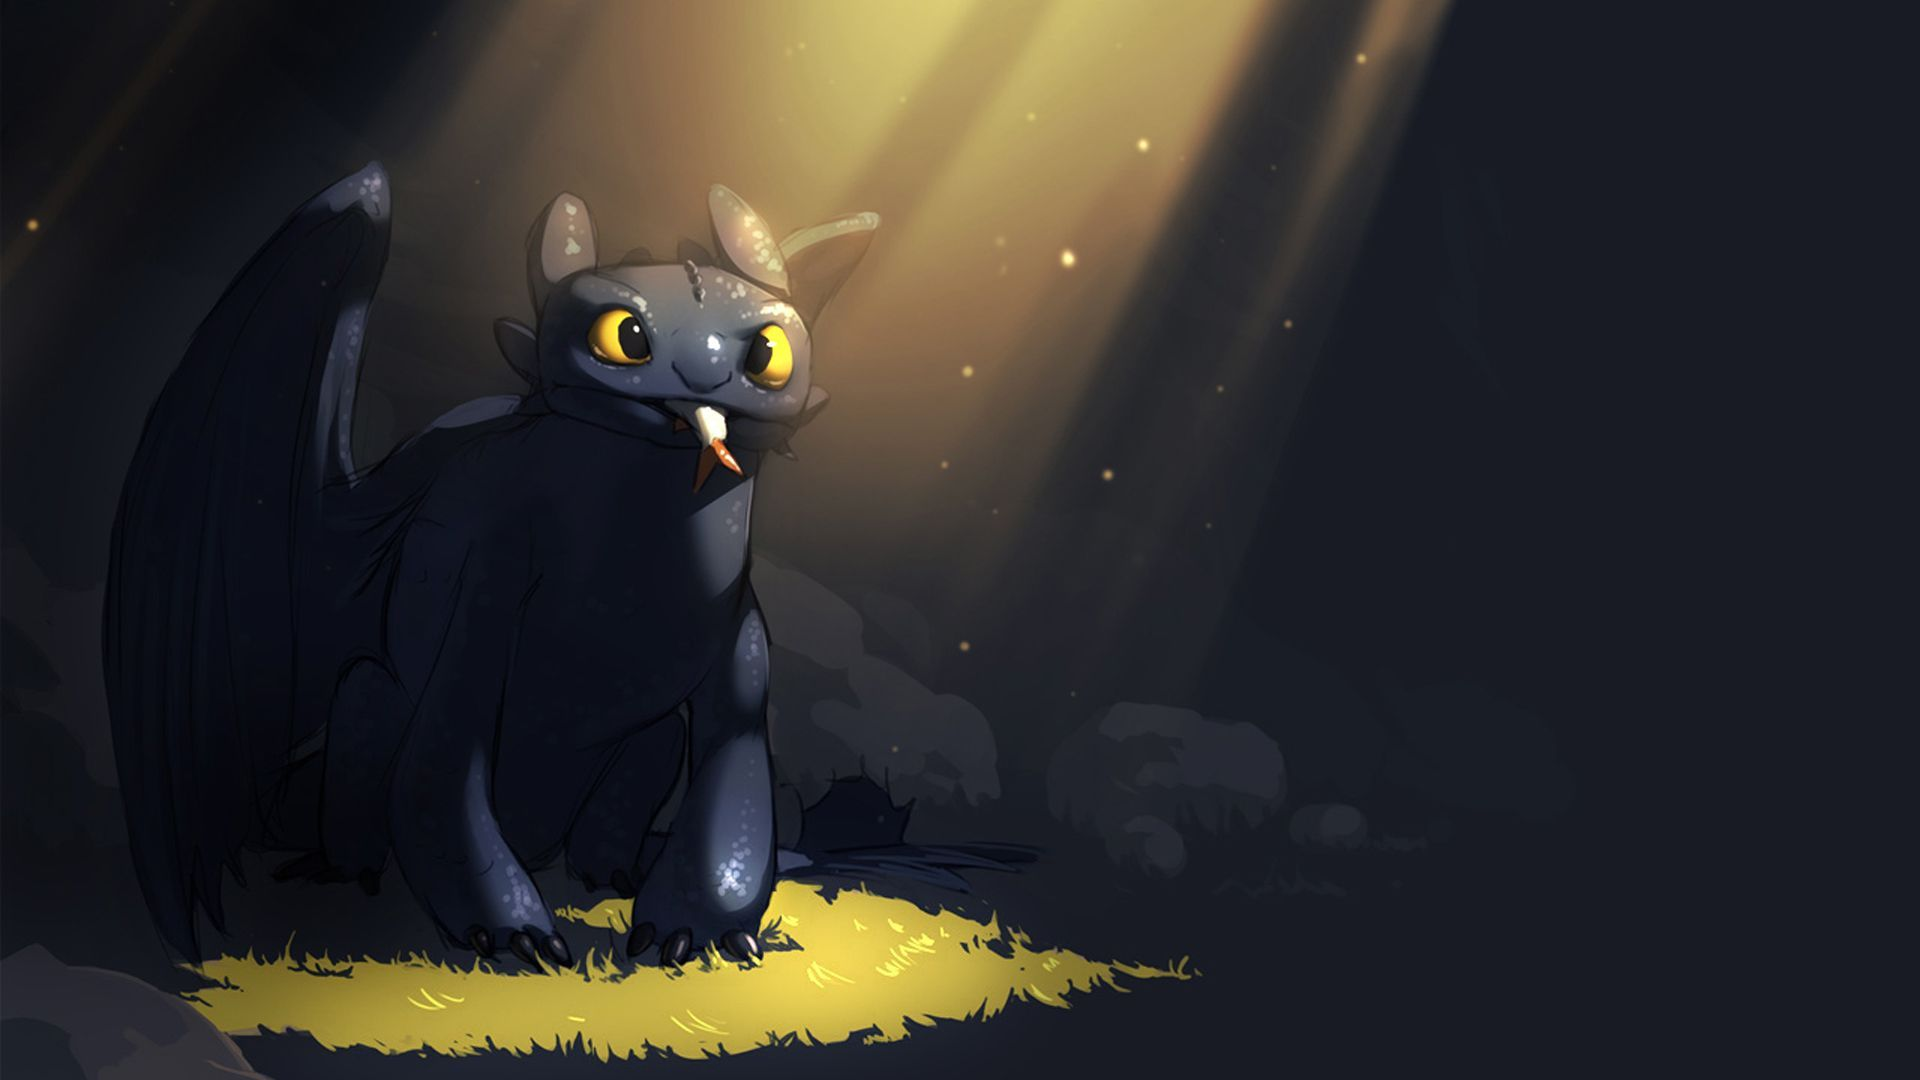 Toothless Wallpaper Hd How To Train Your Dragon Toothless  Wallpaper